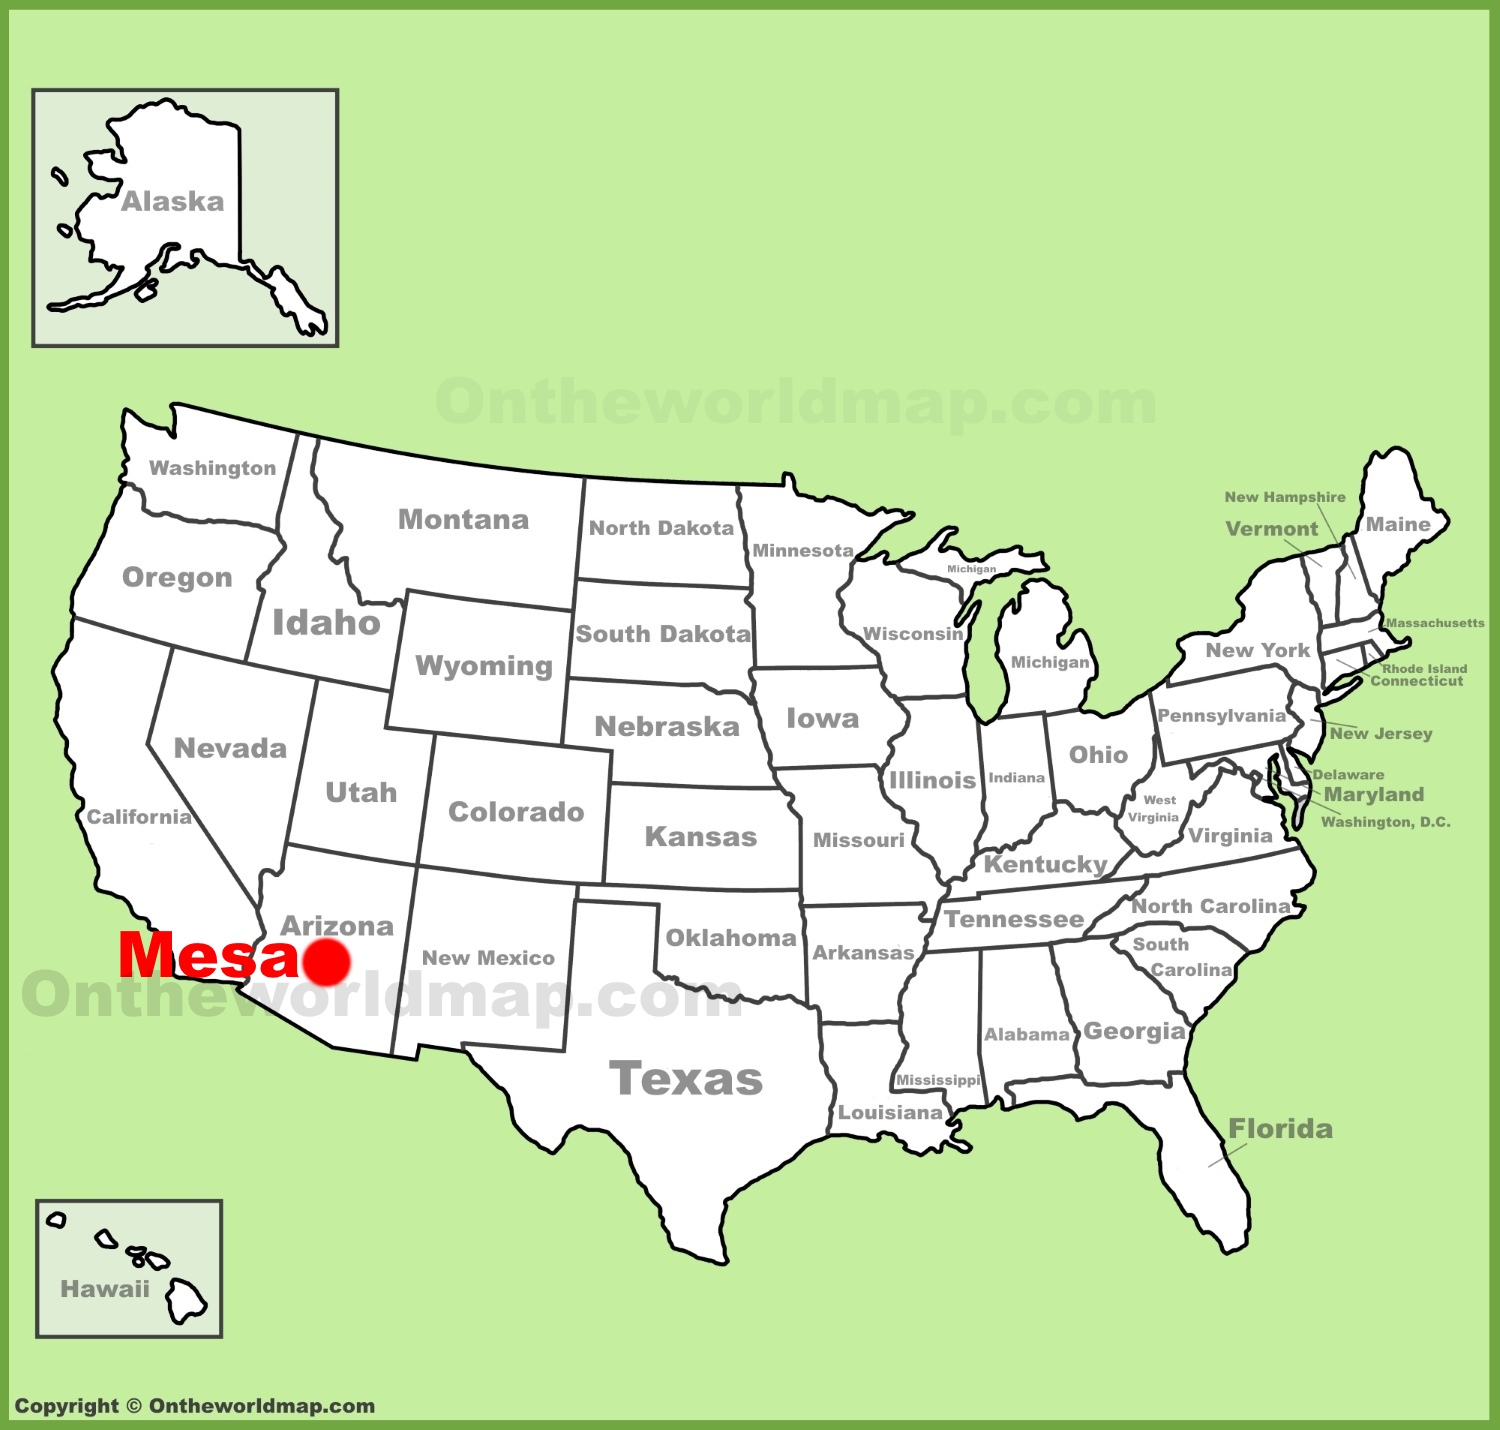 Mesa location on the US Map